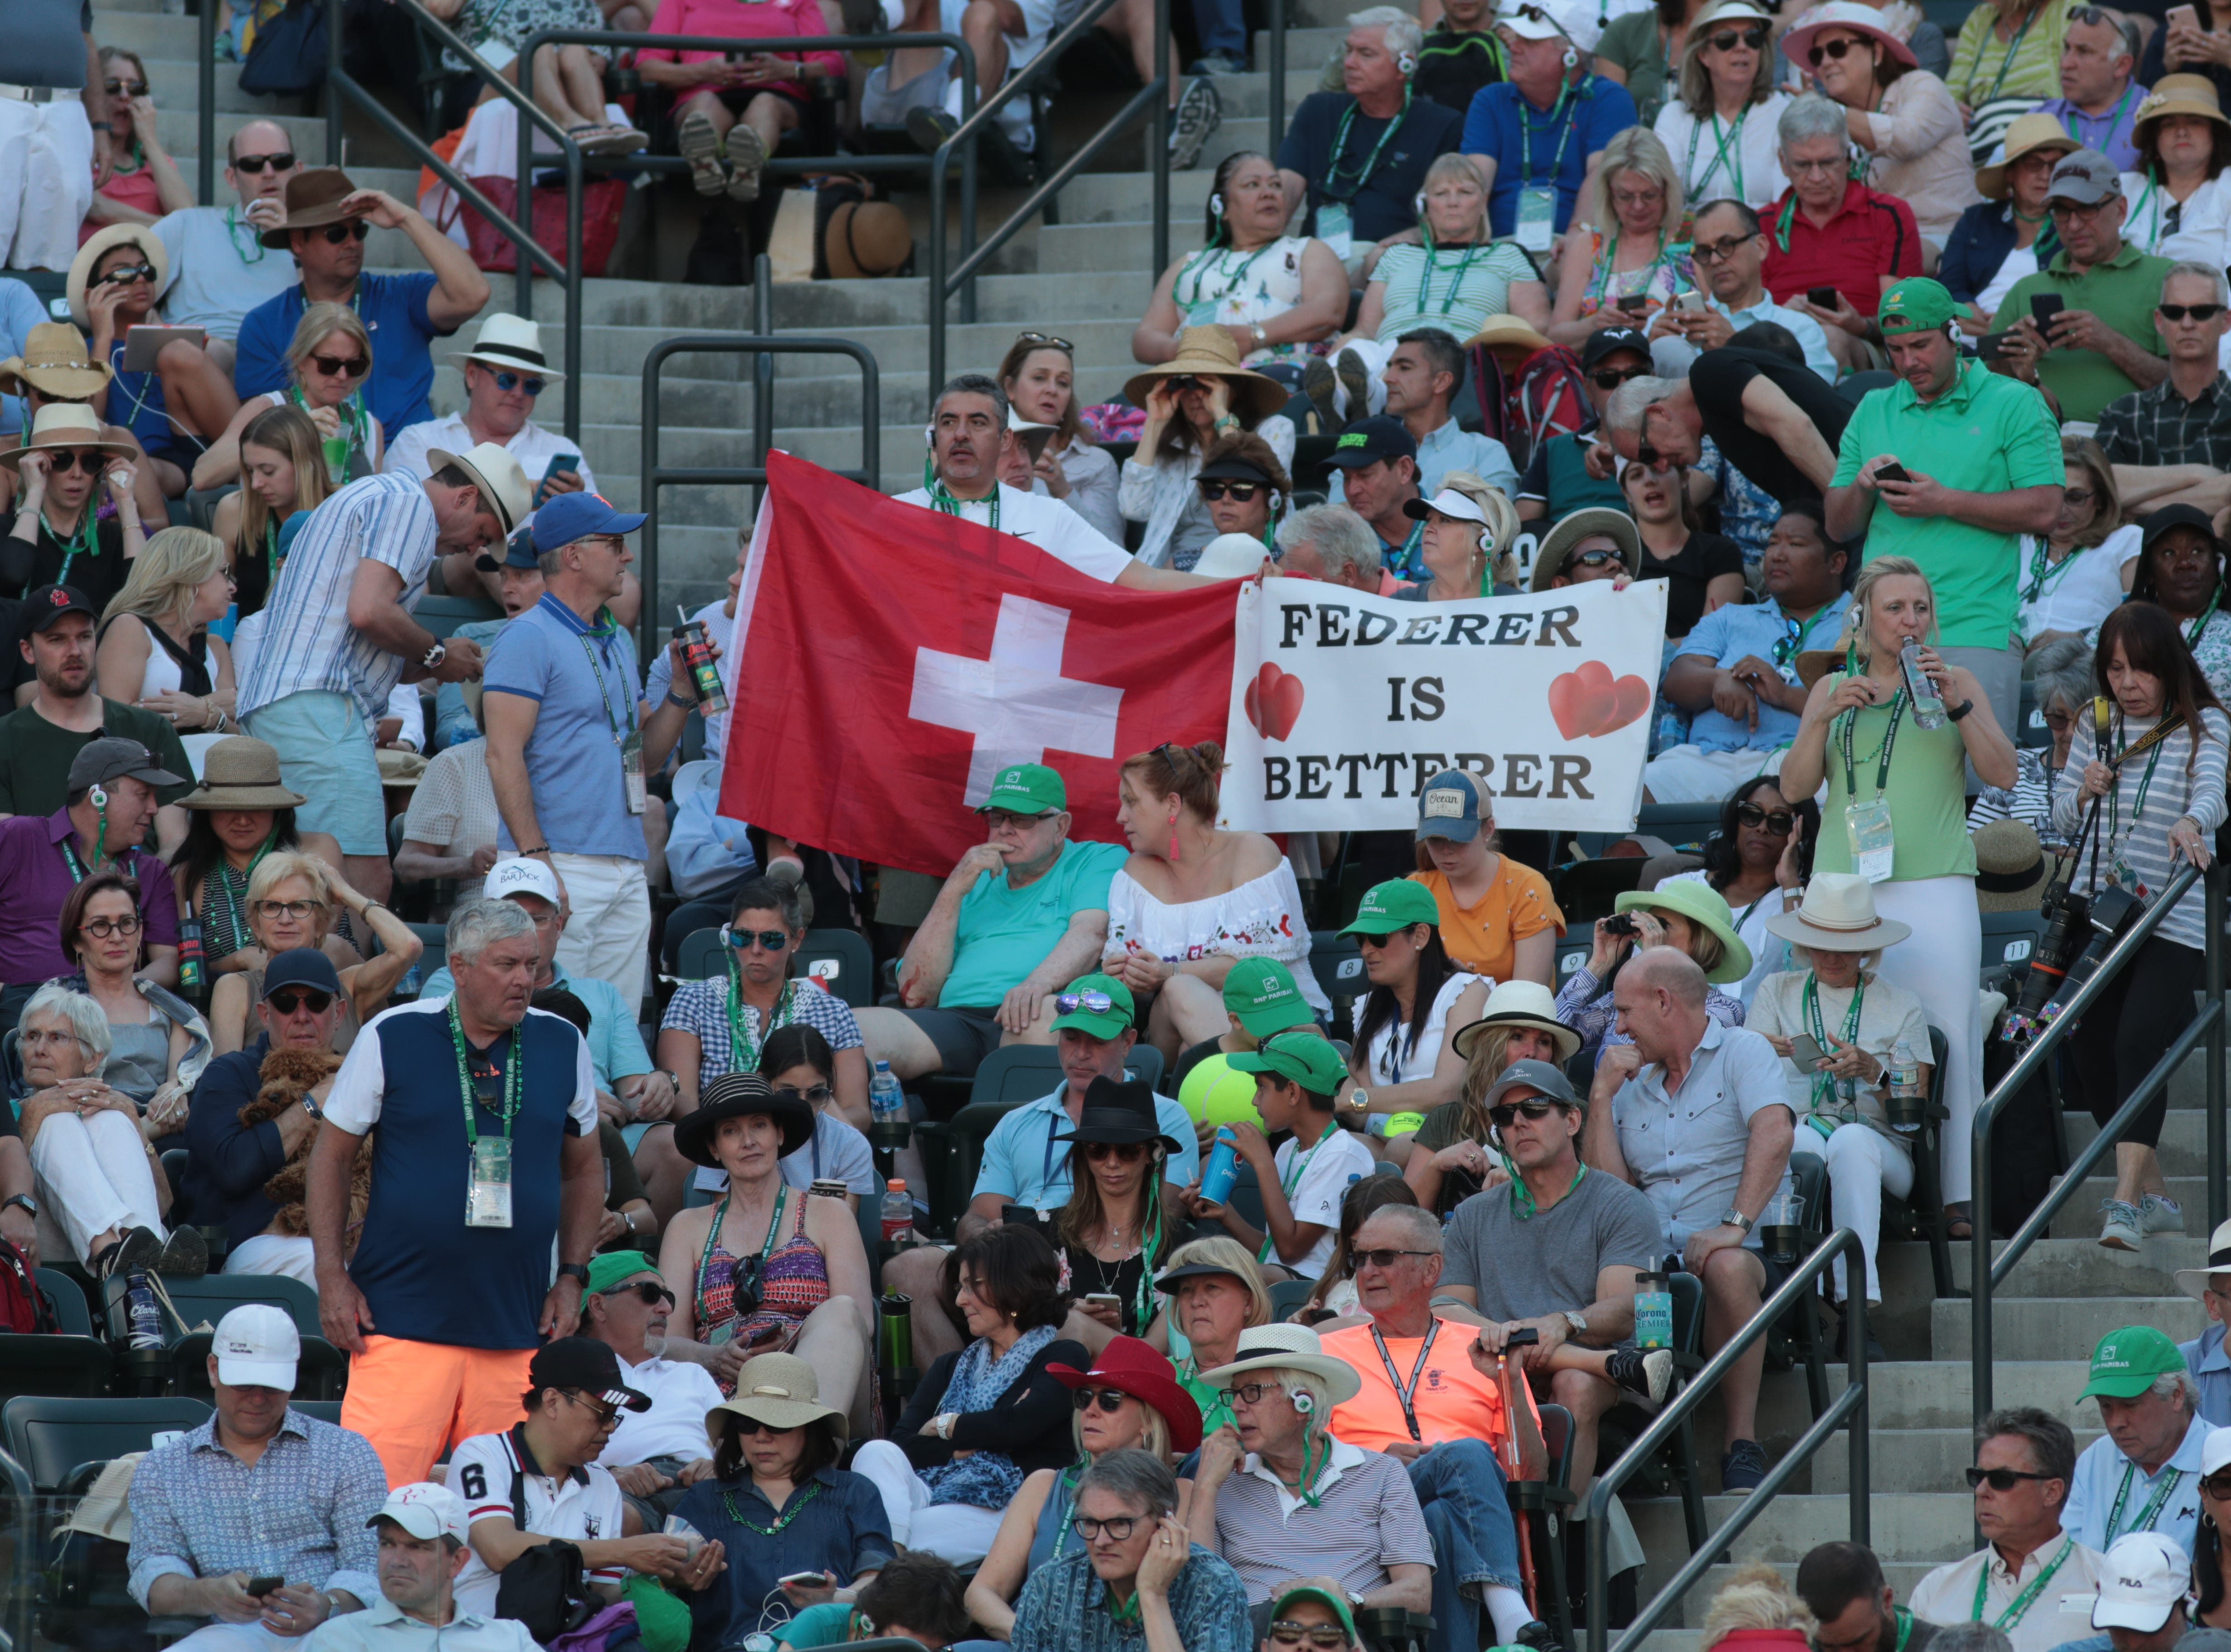 Fans cheer for Roger Federer in the finals of the BNP Paribas Open in Indian Wells, Calif., March 17, 2019.